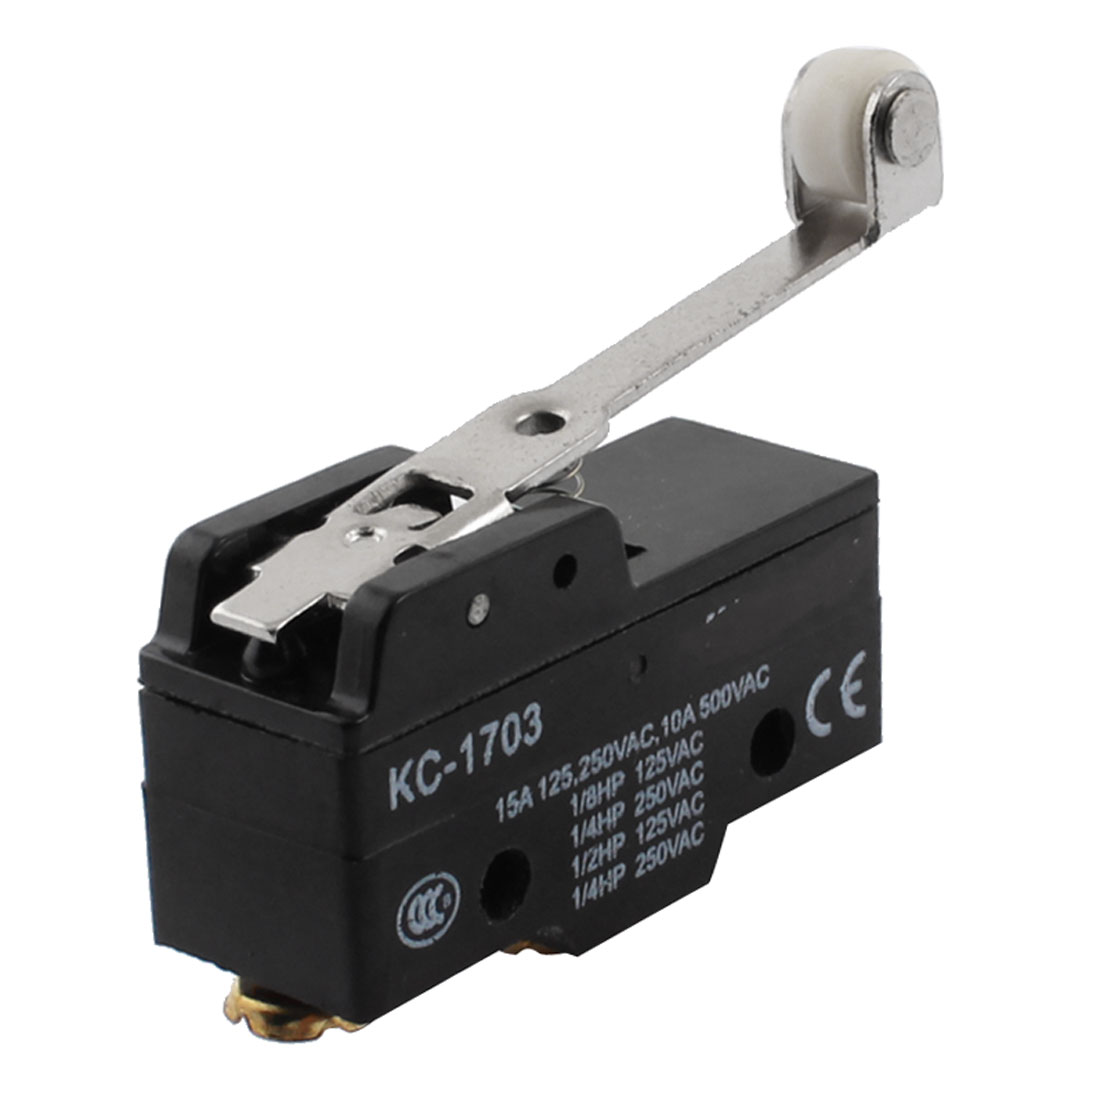 KC-1703 AC 125V/250V/500V 15A/10A SPDT 1NO 1NC 3 Screw Terminal Parallel Long Roller Level Momentary Control Push Button Limit Switch